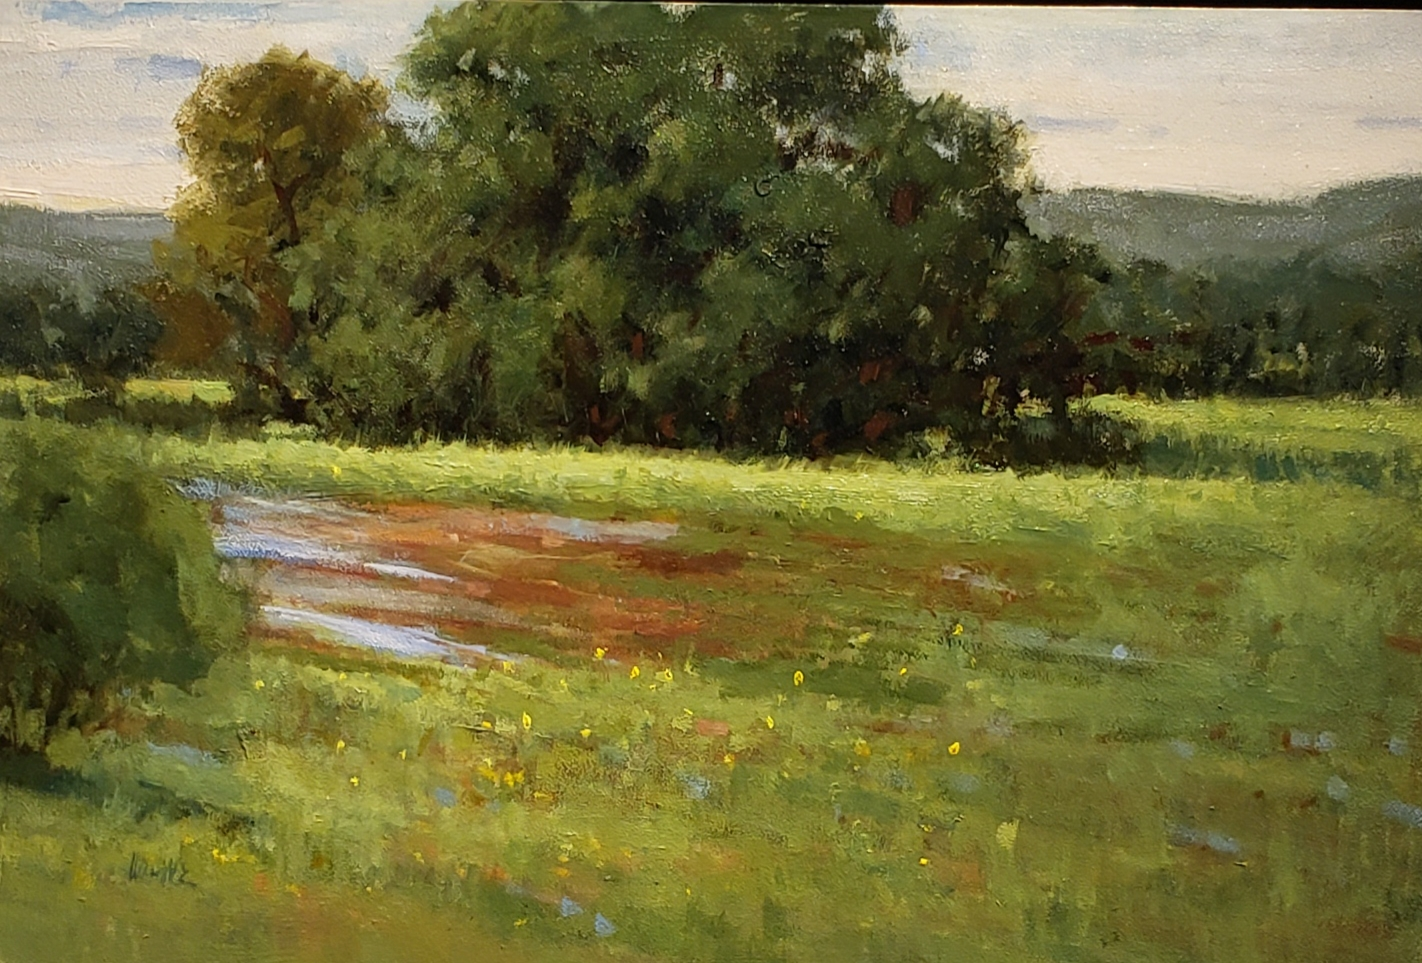 After the Rain 12 x 18 oil